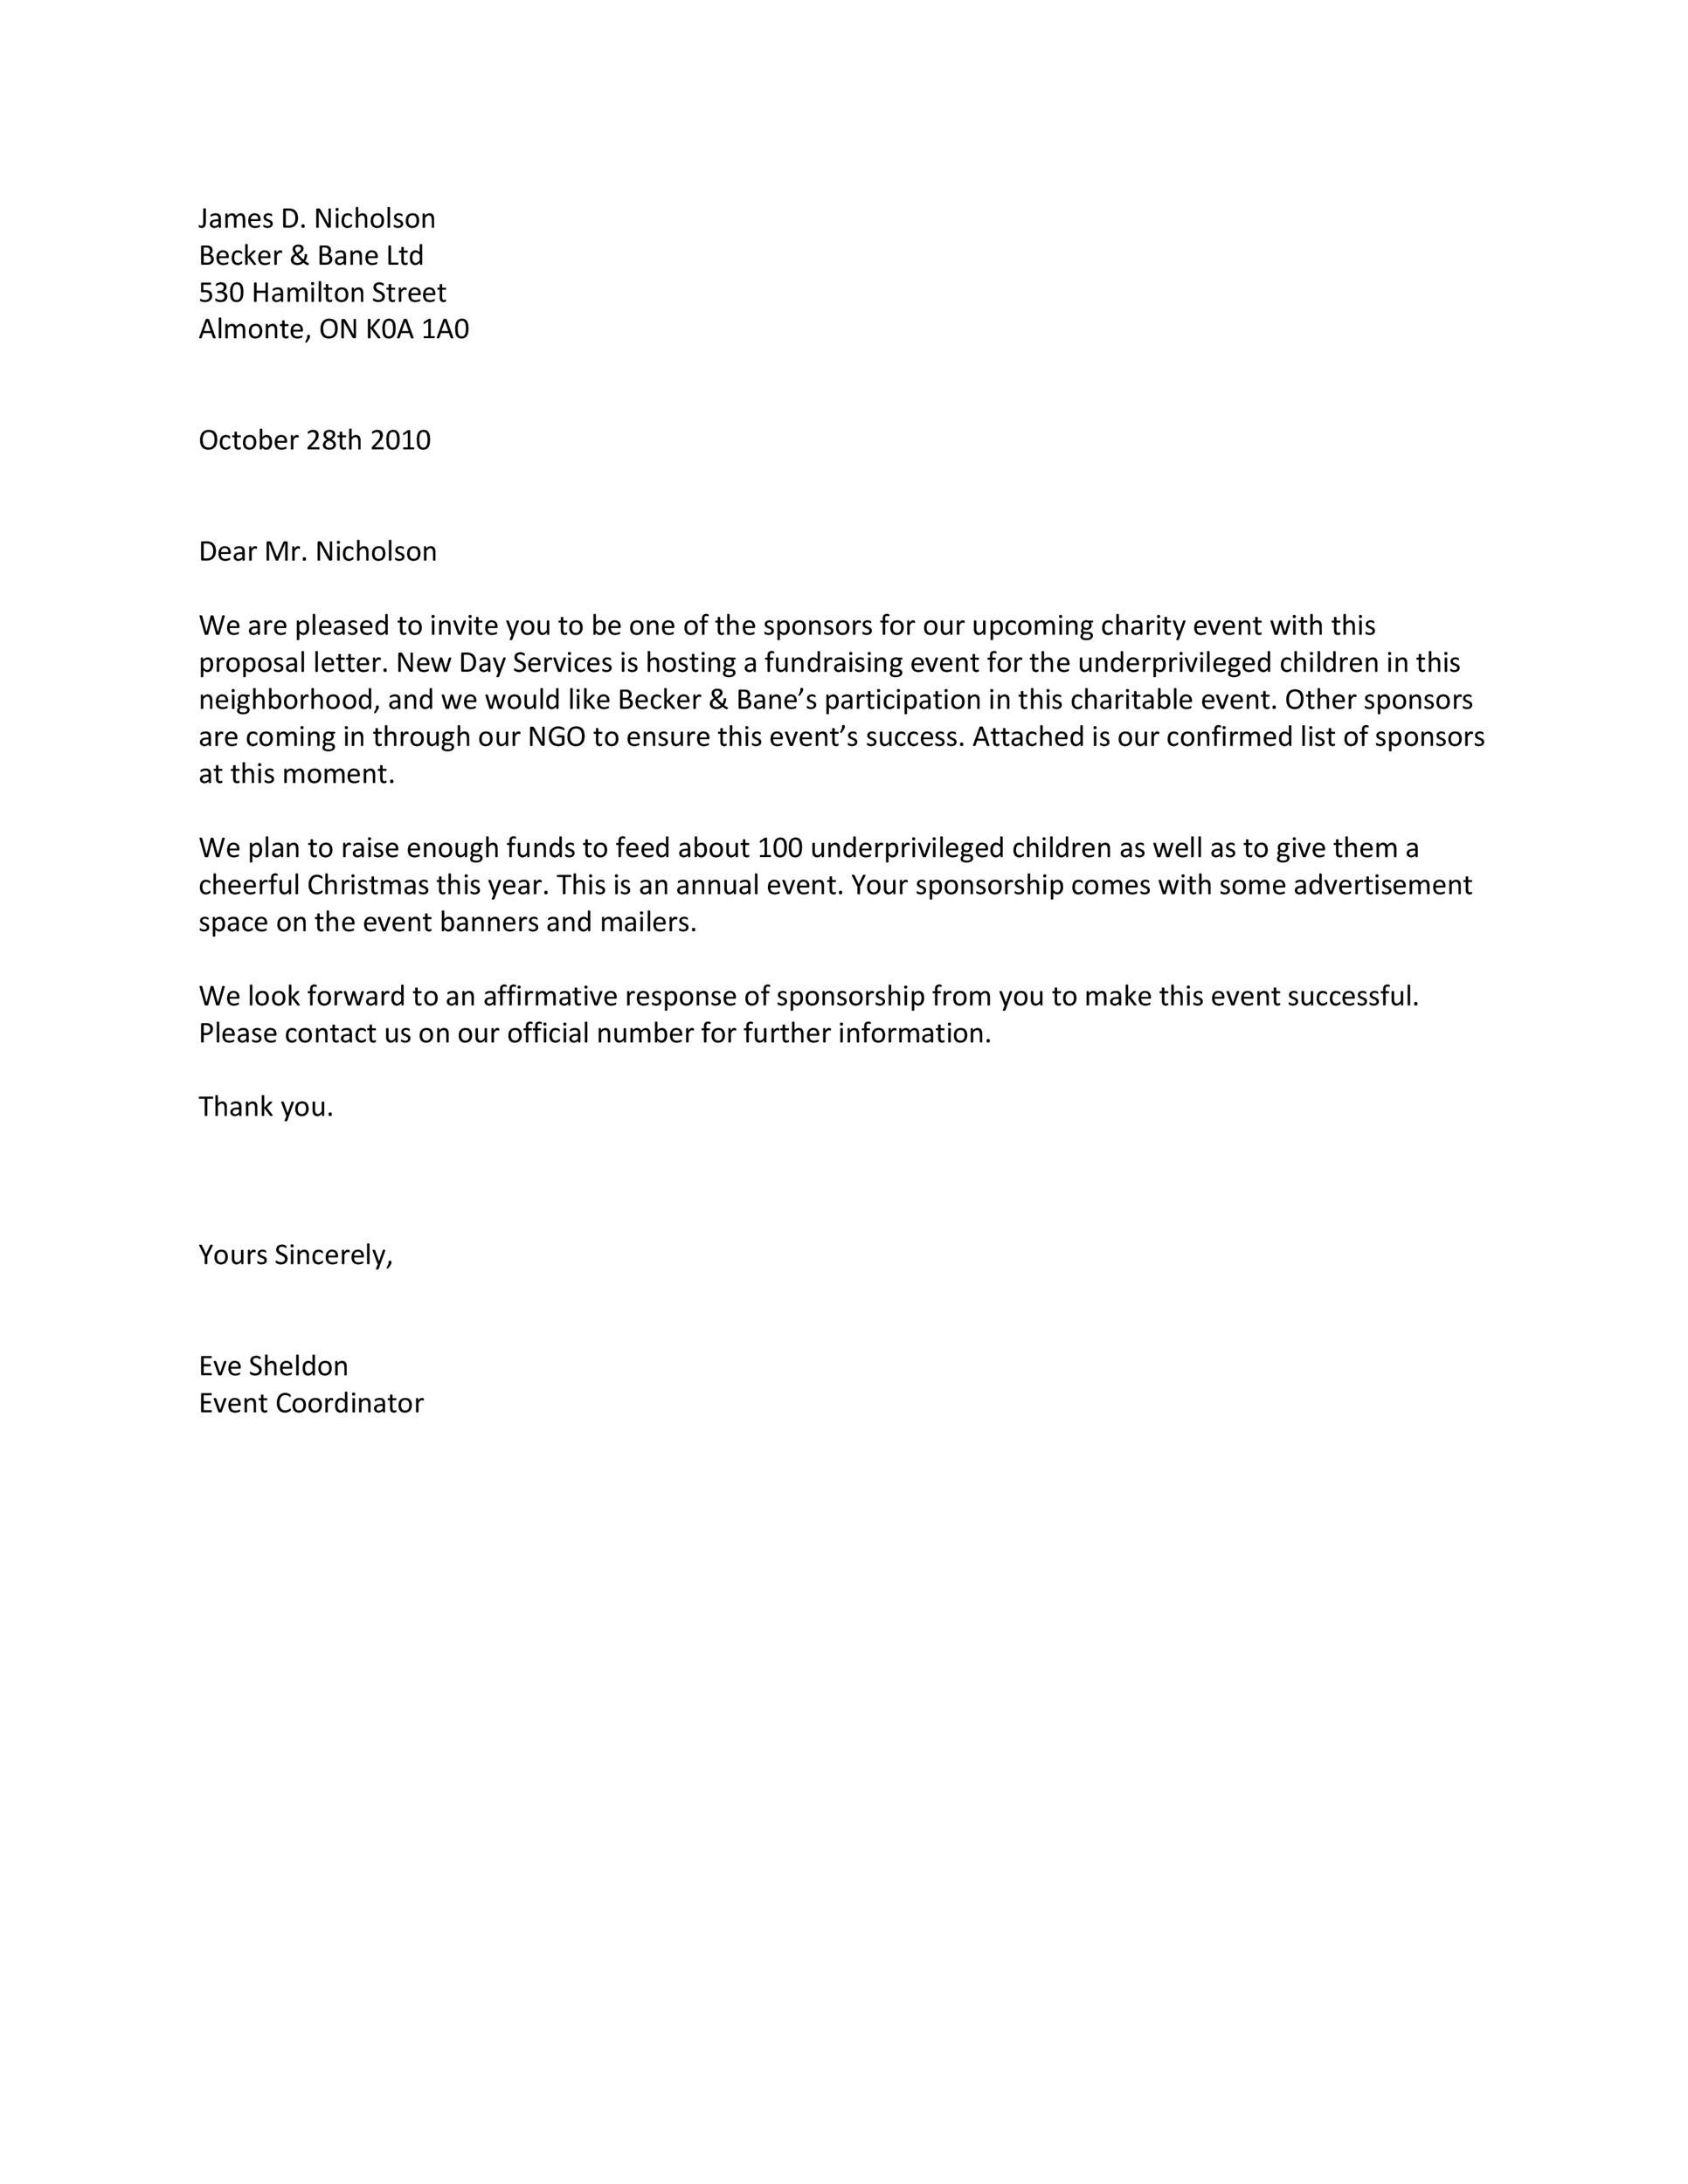 Advertising Proposal Letter. Informal Proposal Letter Example